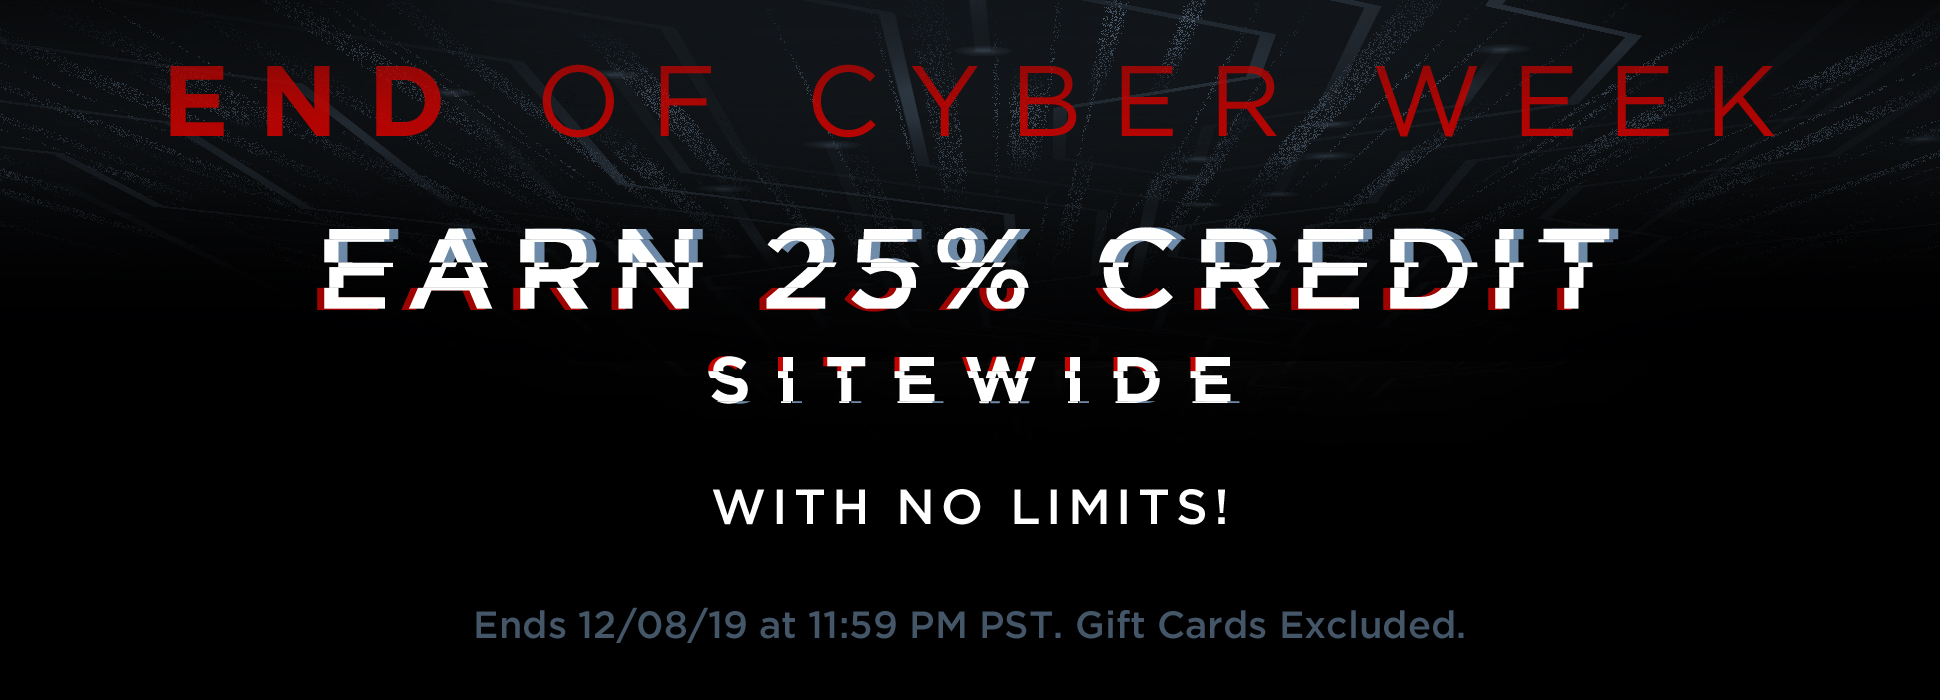 Cyber Week Final Day (Web Banner)